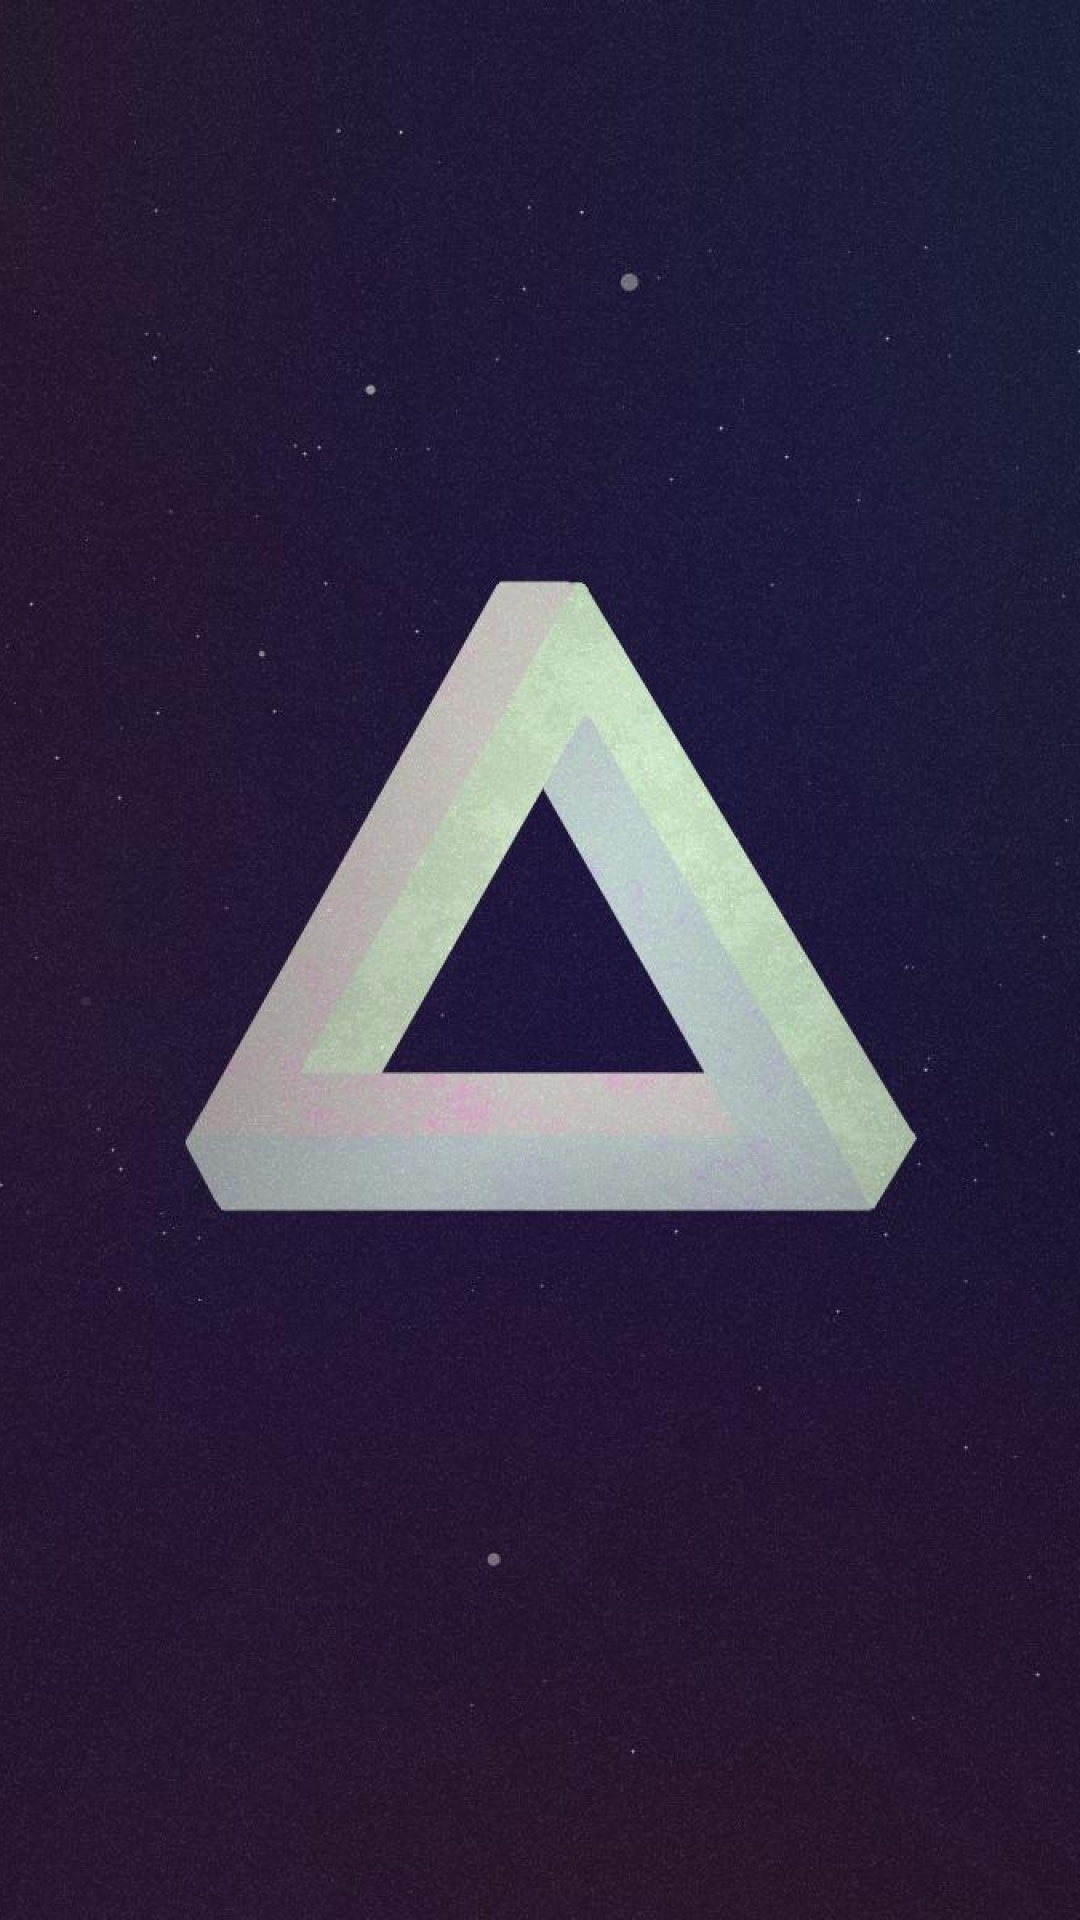 Triangle Minimalist Phone Wallpapers Hipster Wallpaper - Minimalist Phone Wallpaper Hd , HD Wallpaper & Backgrounds